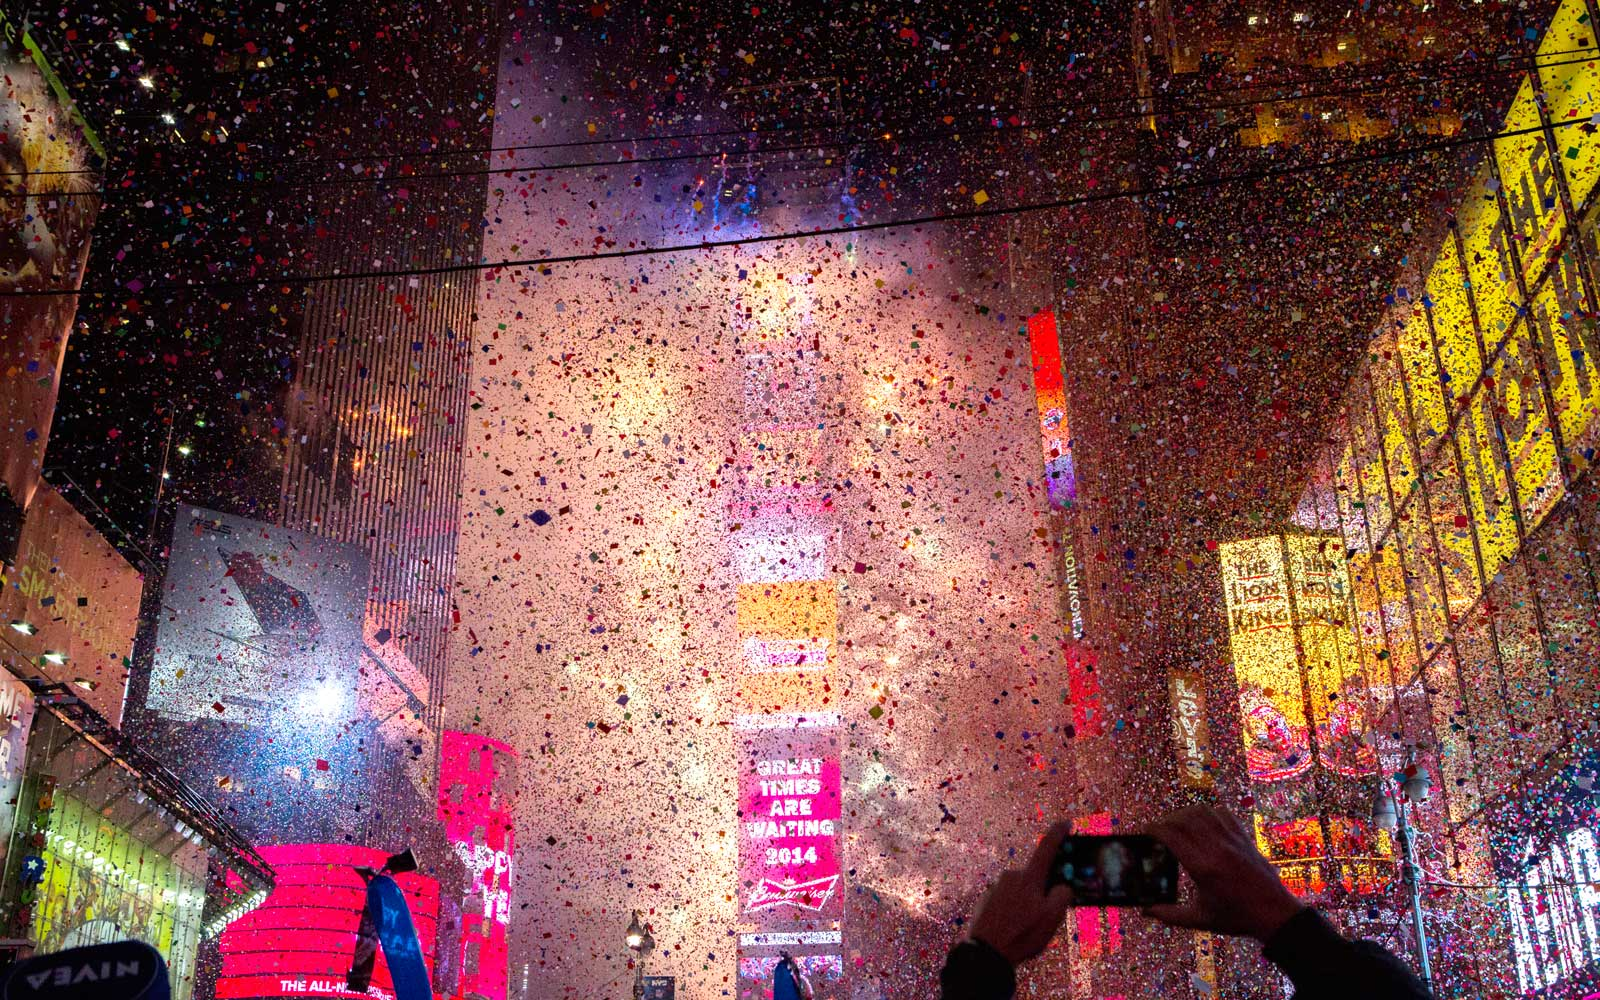 New Years Eve, Times Square, New York City